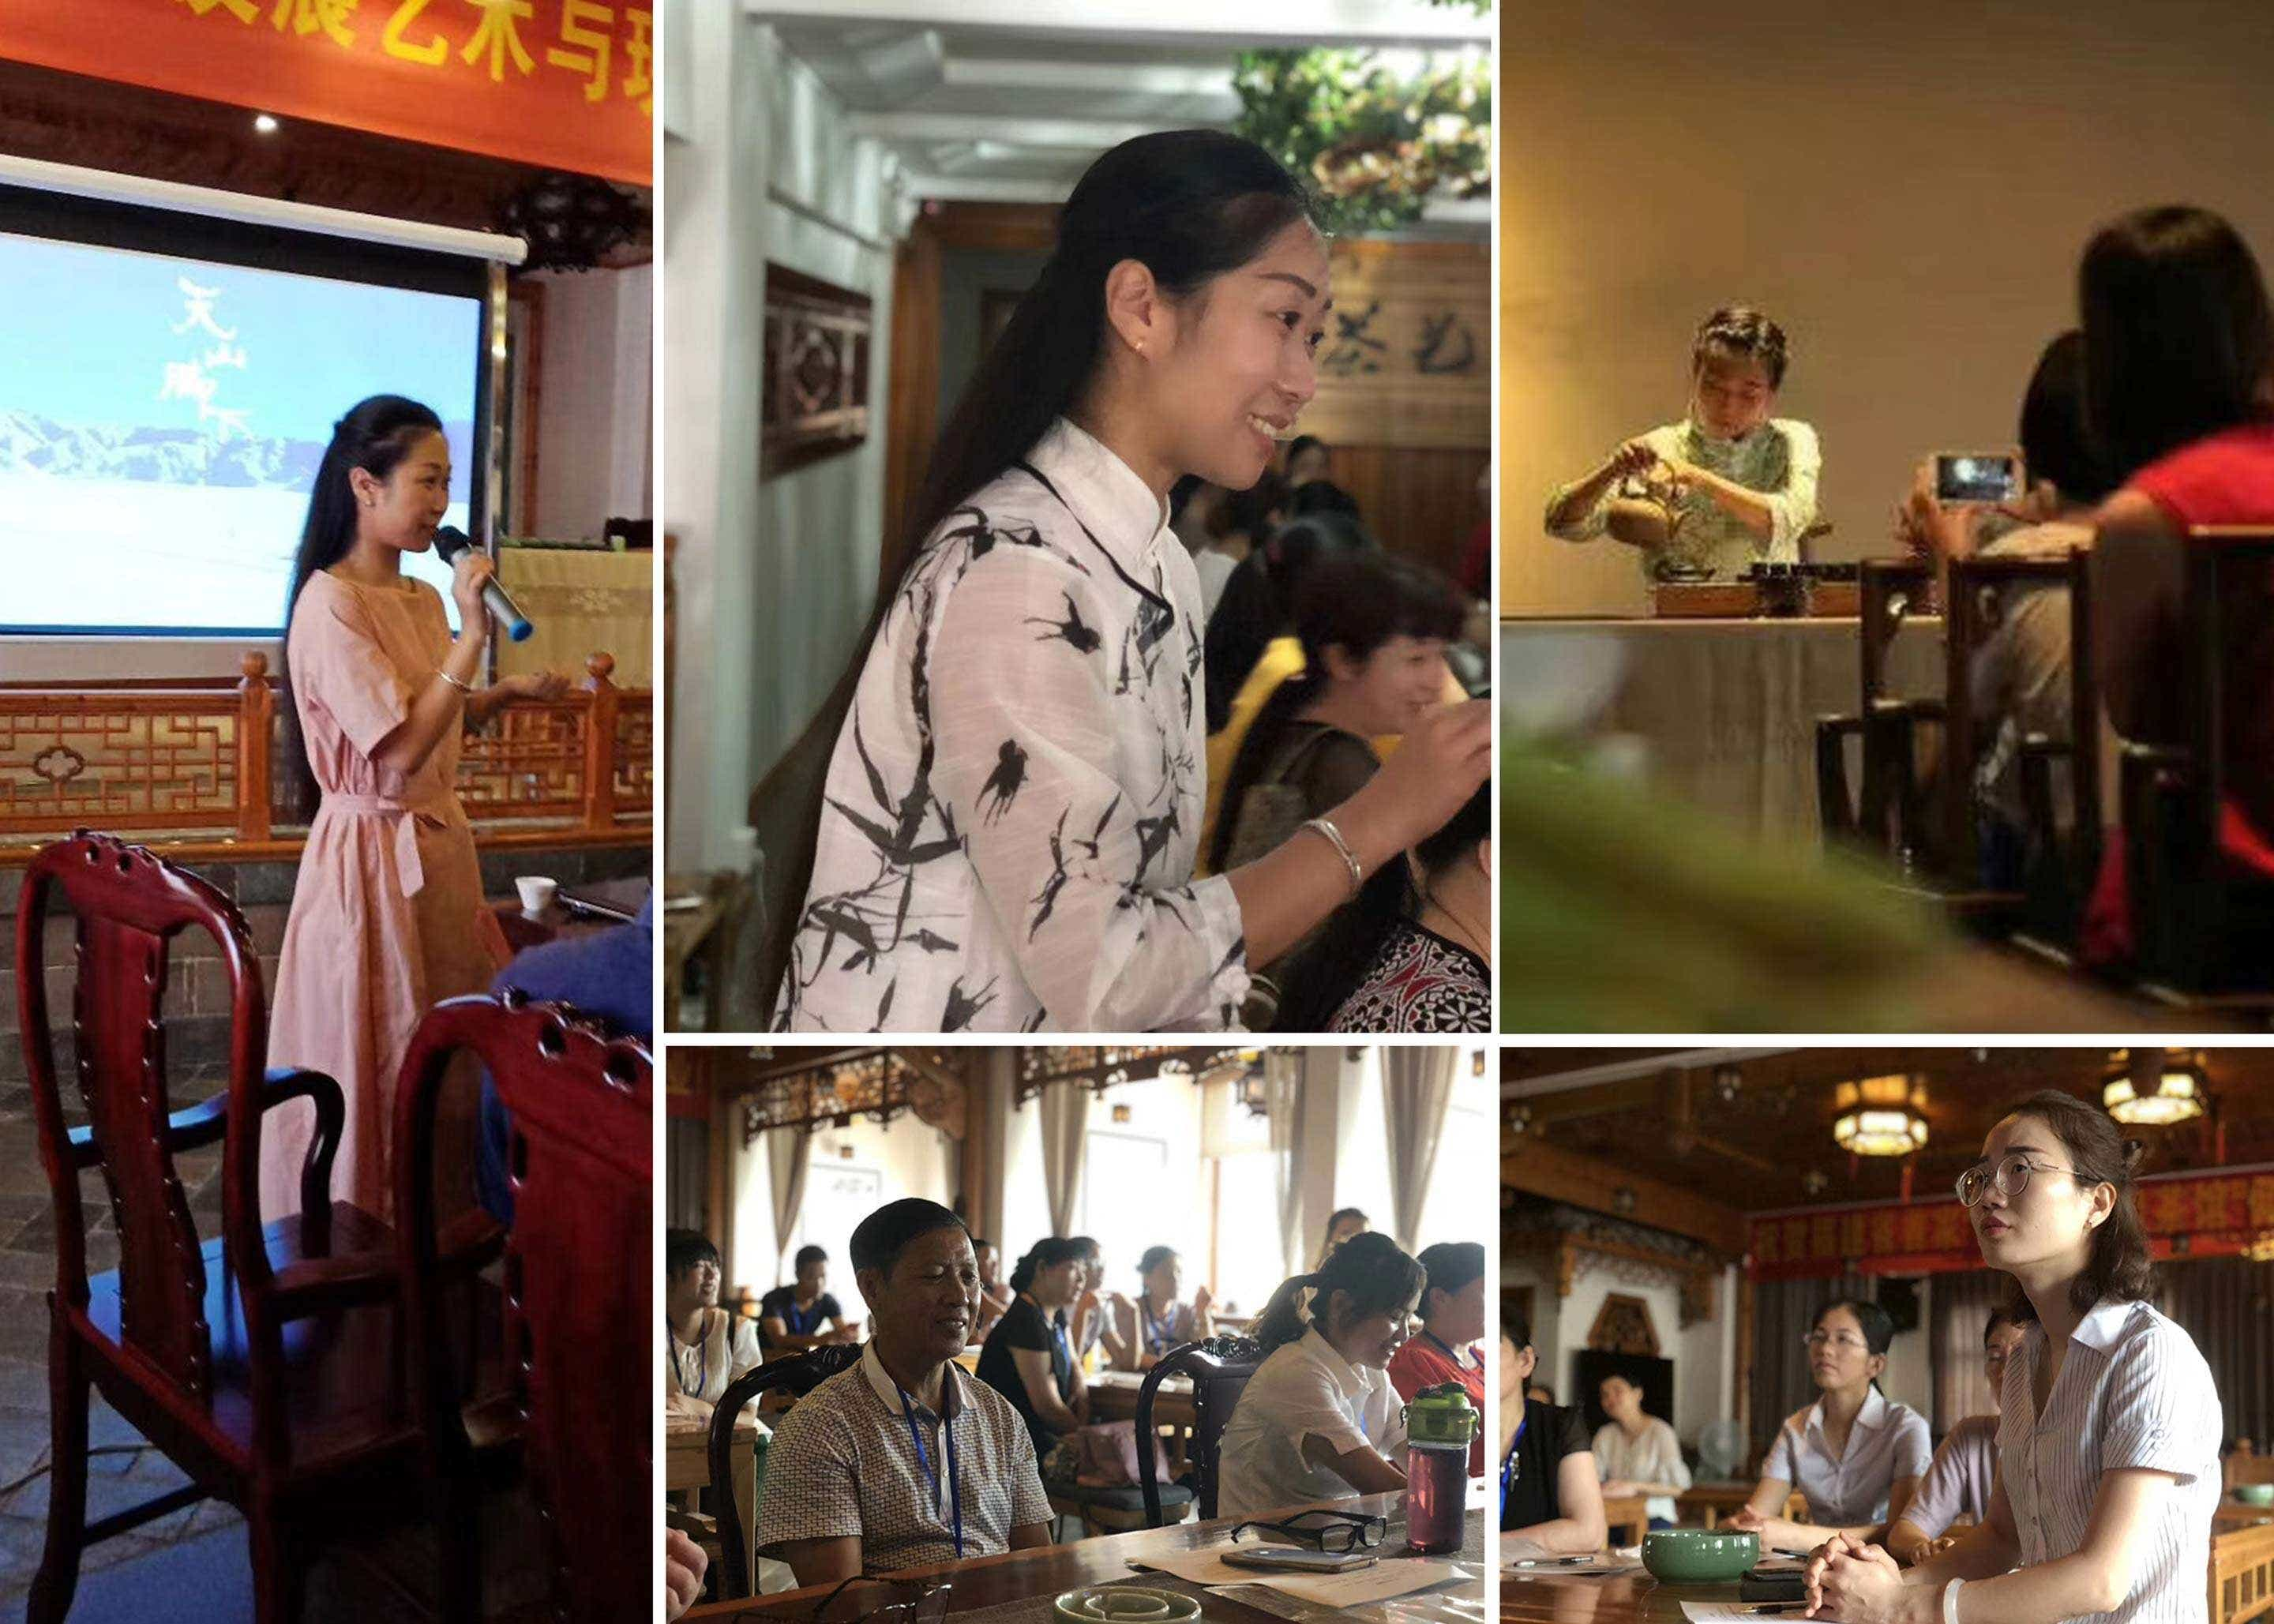 Li Xiangxi teaches high level tea ceremony, history, and taste training